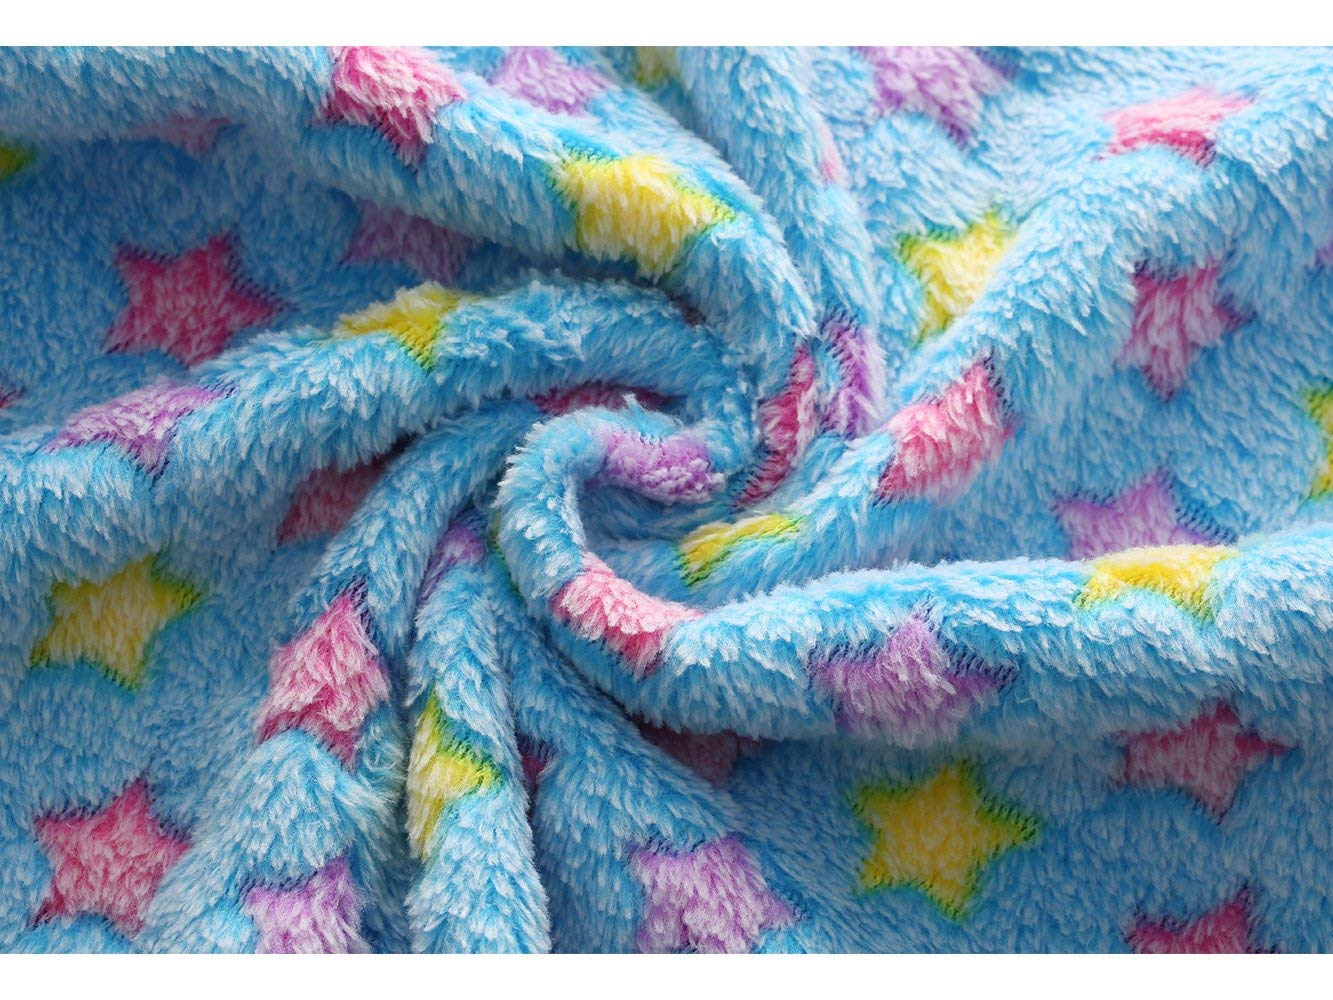 luciphia 1 Pack 3 Blankets Super Soft Fluffy Premium Fleece Pet Blanket Flannel Throw for Dog Puppy Cat Star Small by luciphia (Image #7)